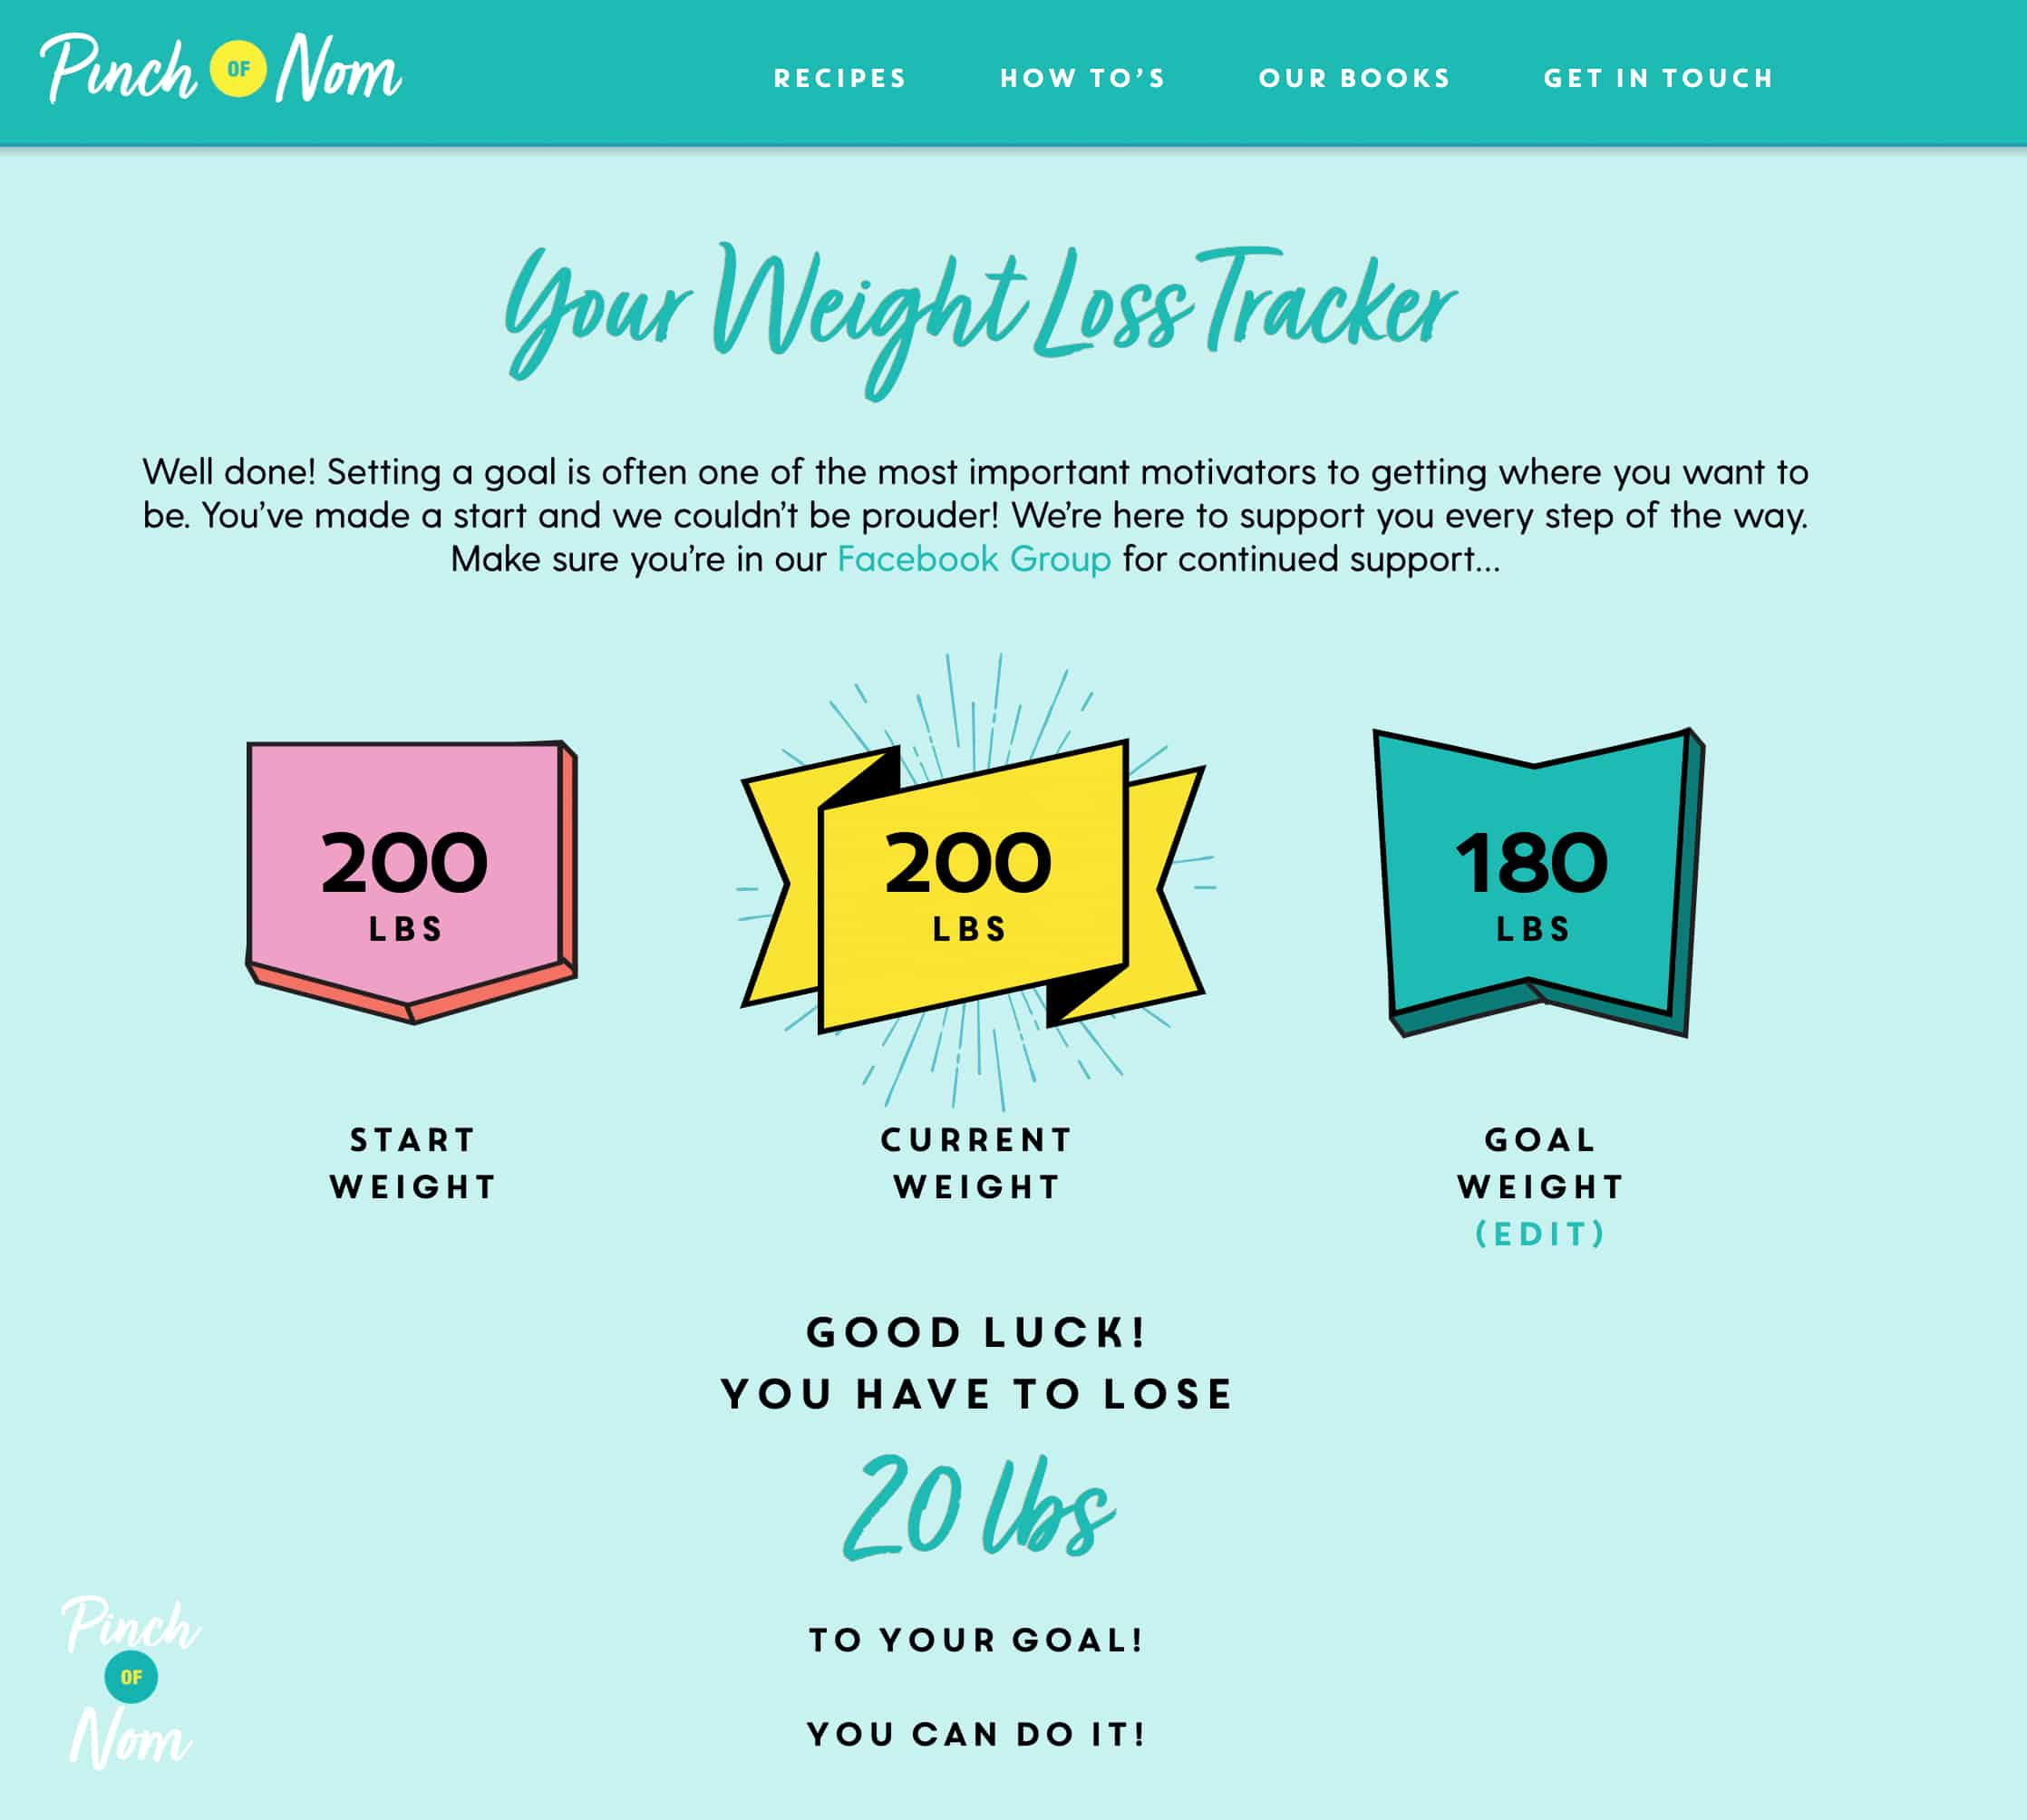 How to use our Weight Loss Tracker - Pinch of Nom